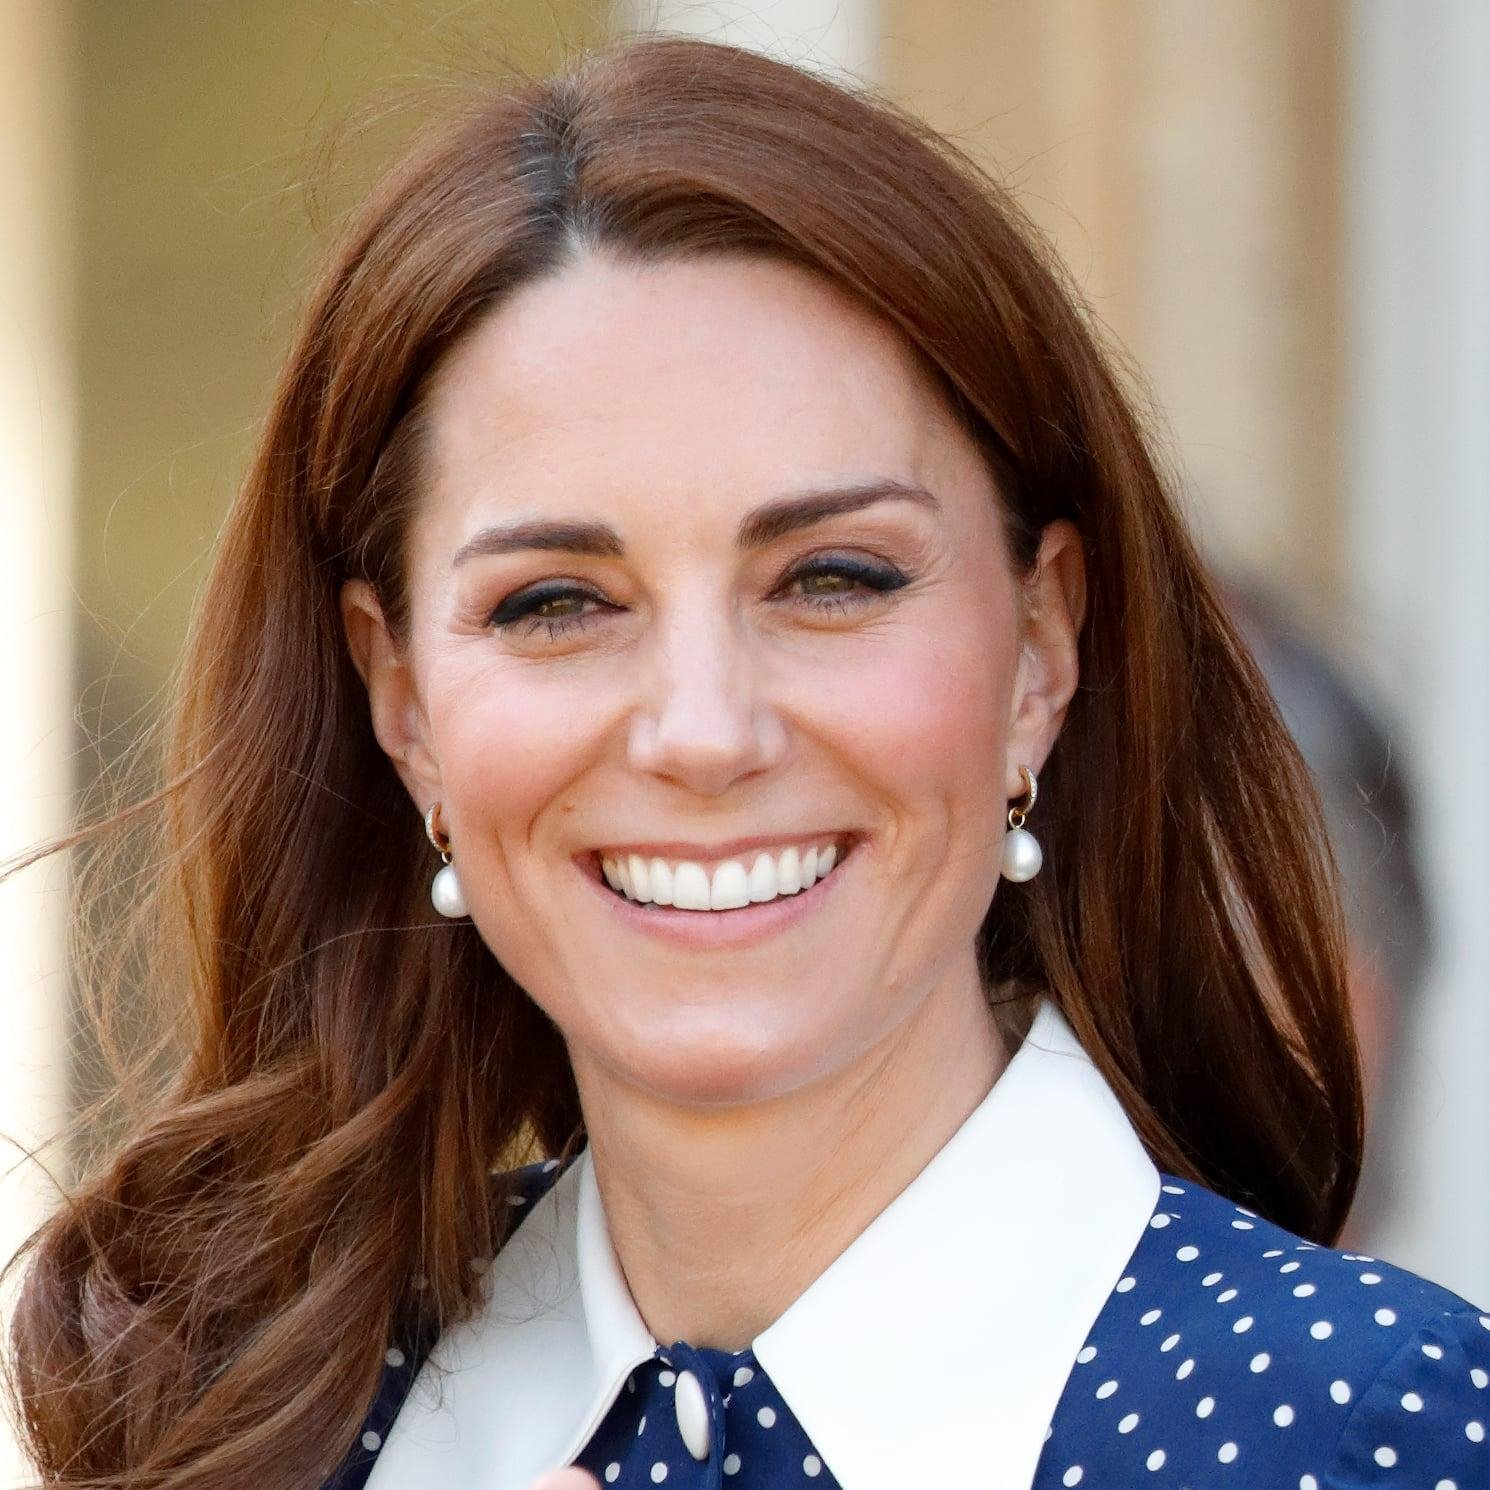 كيت ميدلتون kate middleton